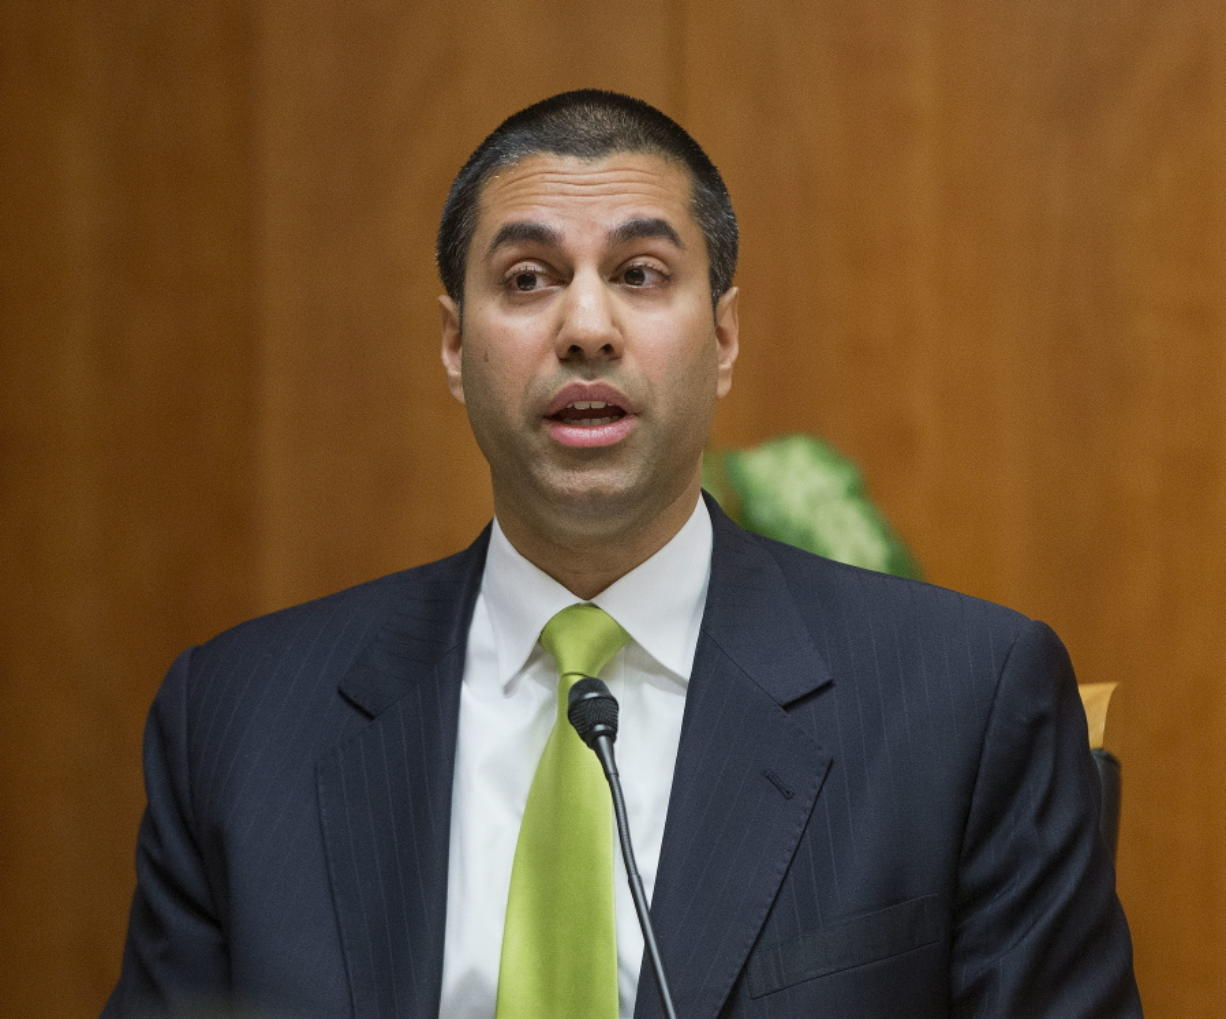 """Federal Communication Commission Commissioner Ajit Pai speaks in 2015 during an open hearing and vote on """"Net Neutrality"""" in Washington. (Pablo Martinez Monsivais/Associated Press)"""